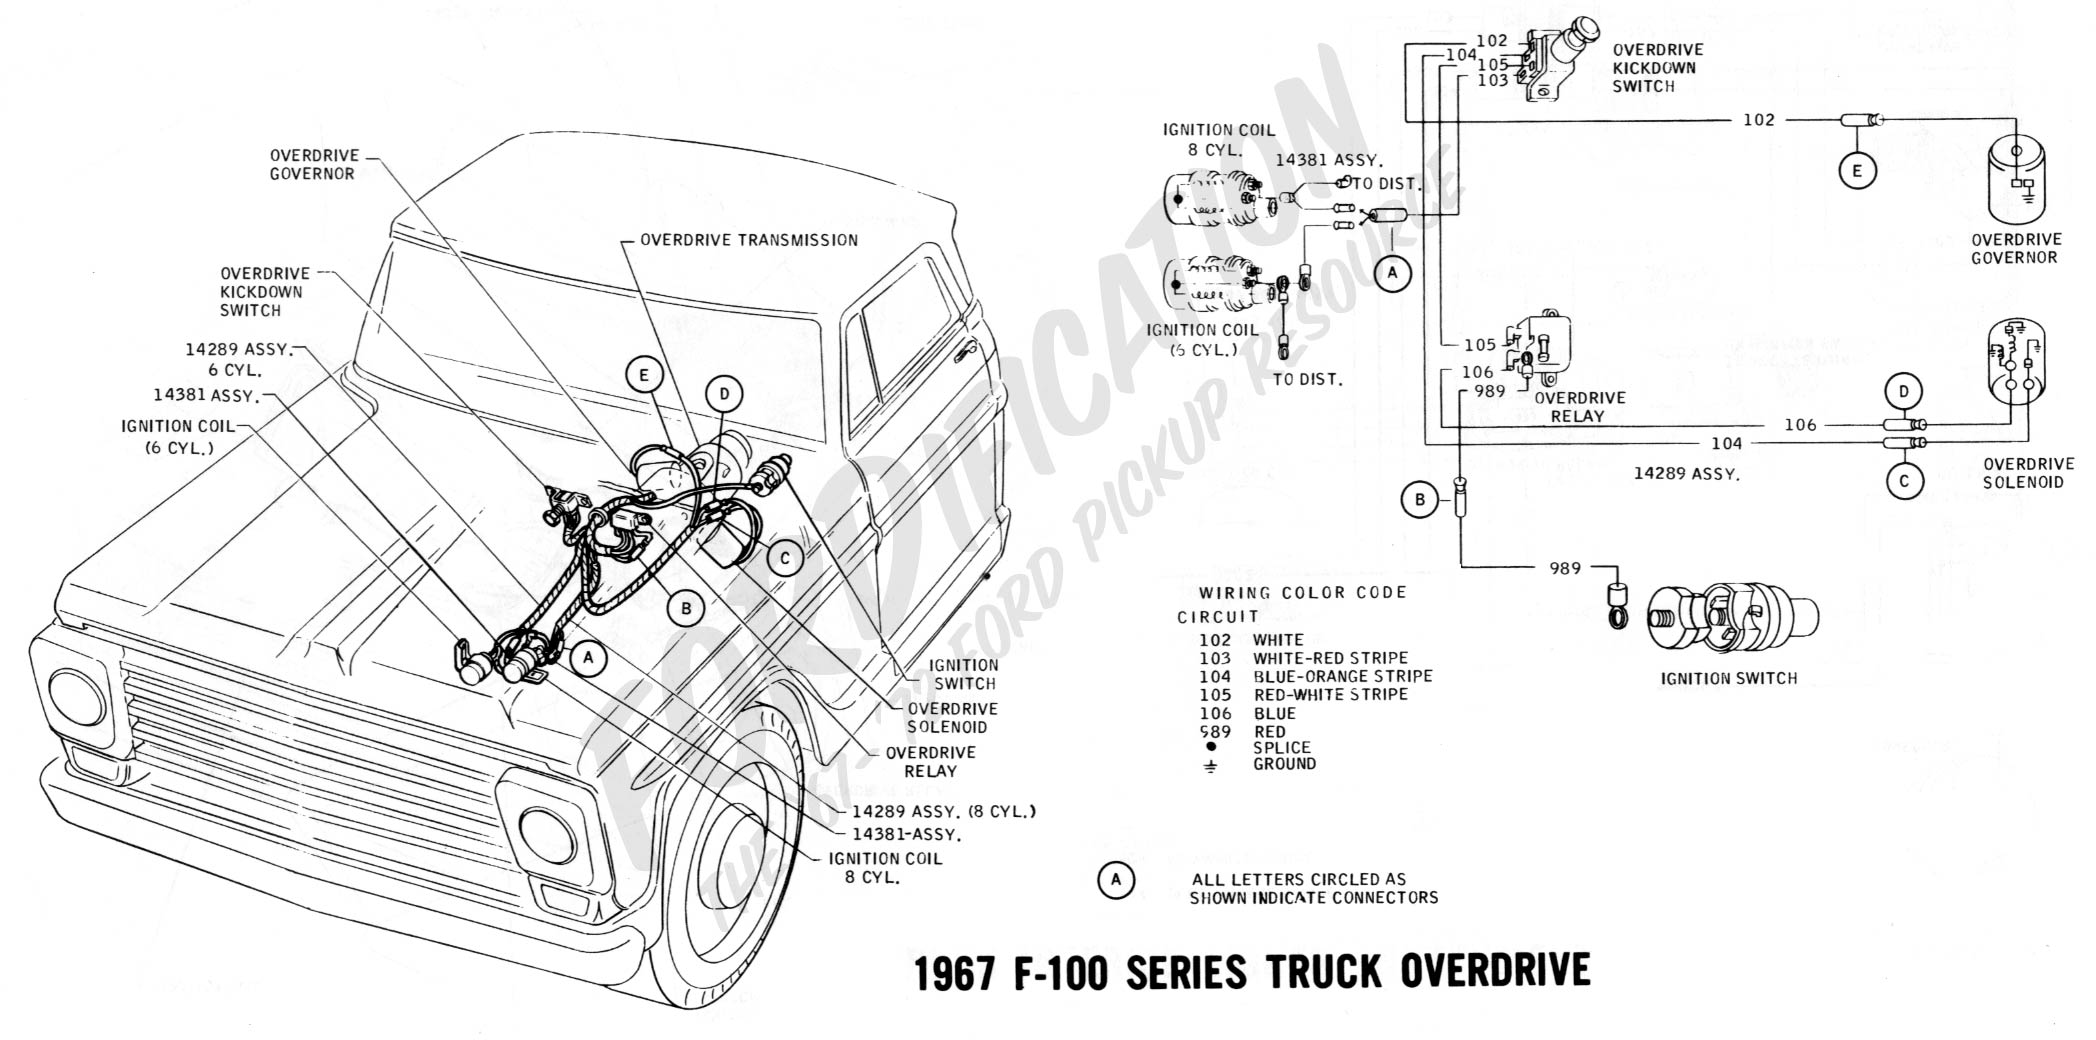 67 Chevrolet Nova Wiring Diagram | Wiring Liry on 1973 nova steering column diagram, 1970 nova steering column diagram, 1963 nova steering column diagram, 1964 nova steering column diagram, ford power steering diagram, 1969 nova steering column diagram, 1965 nova steering column diagram, 1968 nova steering column diagram, 1966 nova wiring diagram, 1971 nova steering column diagram, 1974 nova steering column diagram,